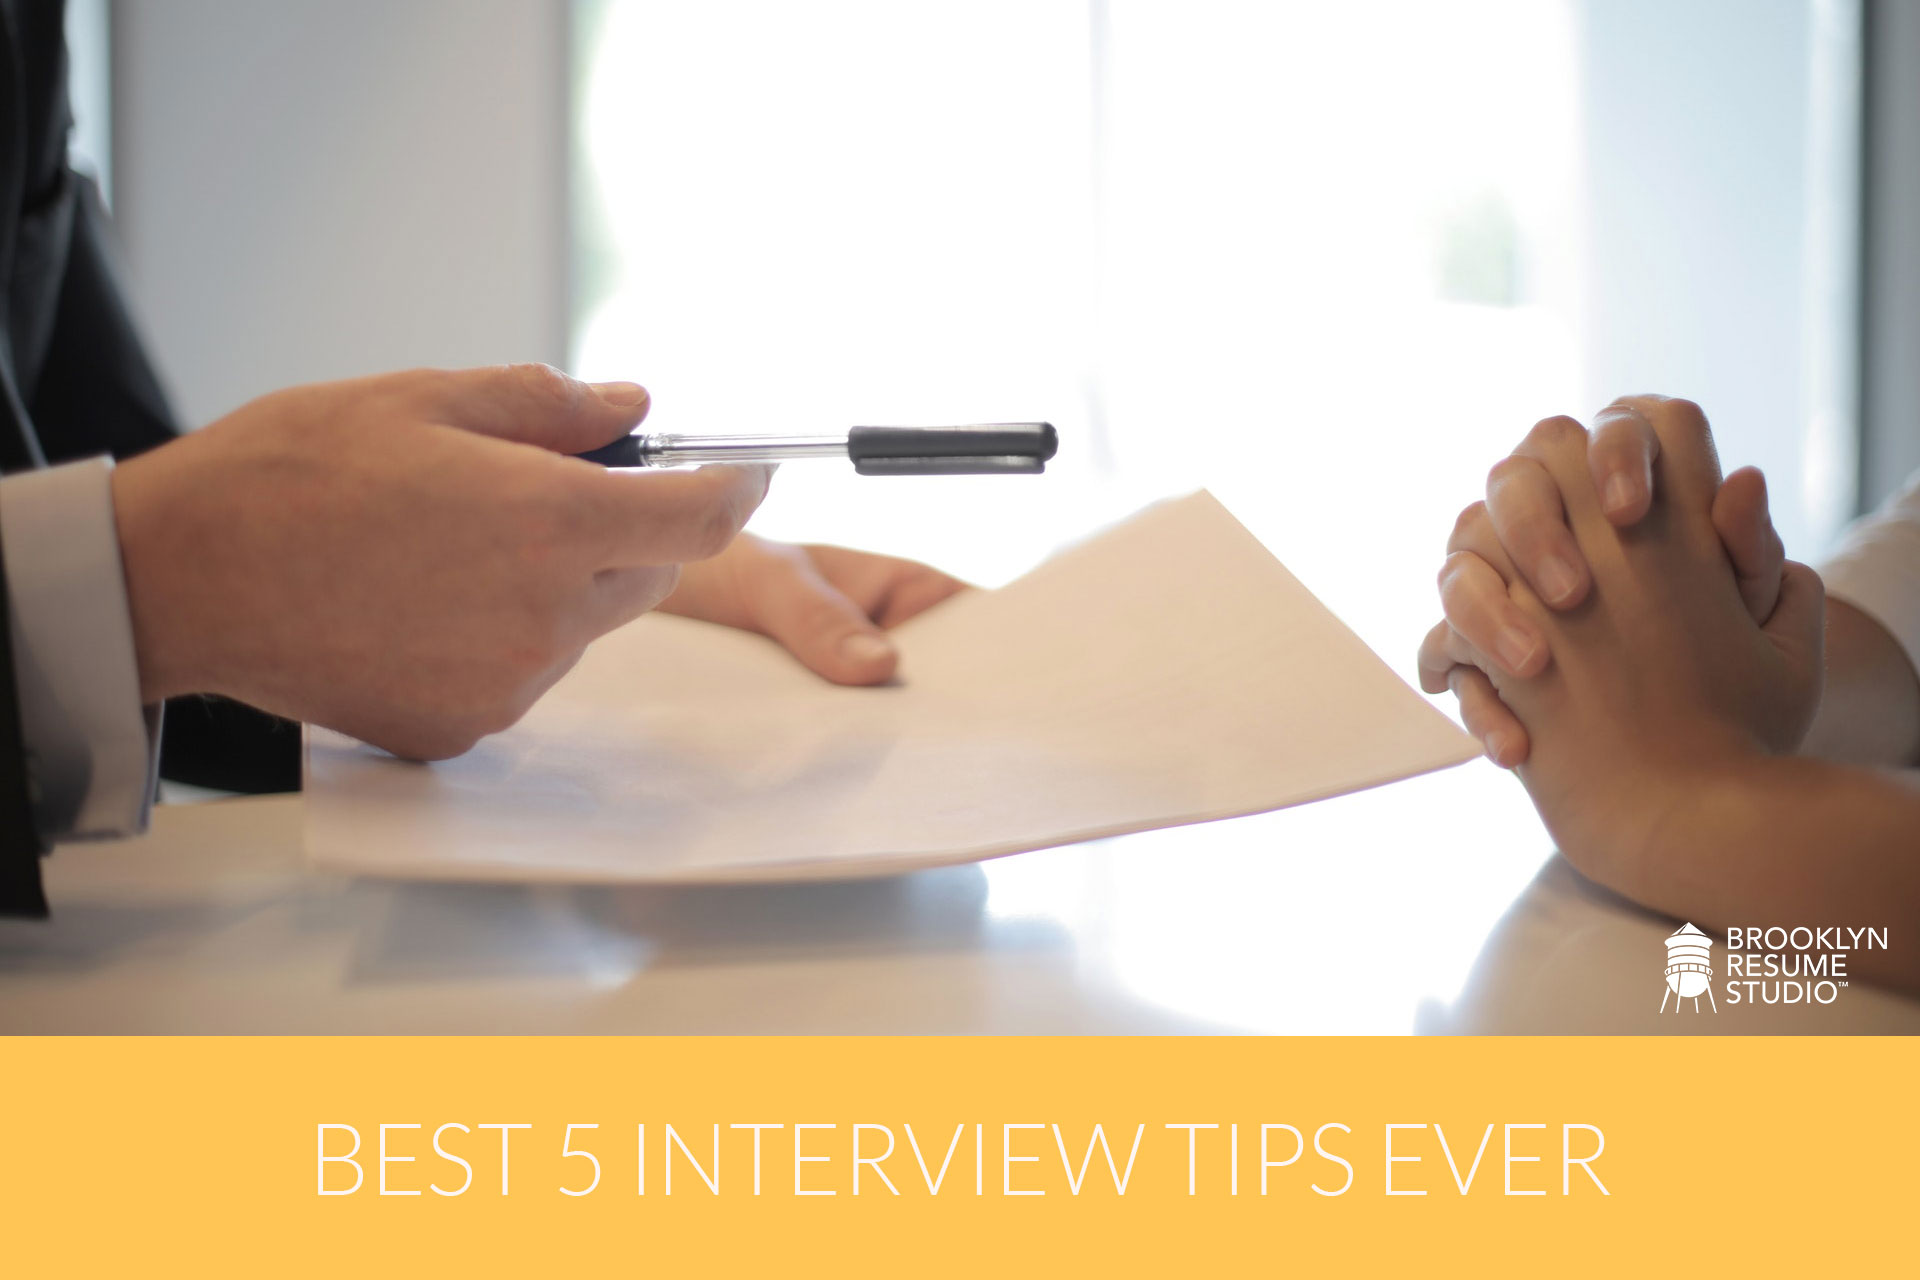 Best 5 Interview Tips Ever